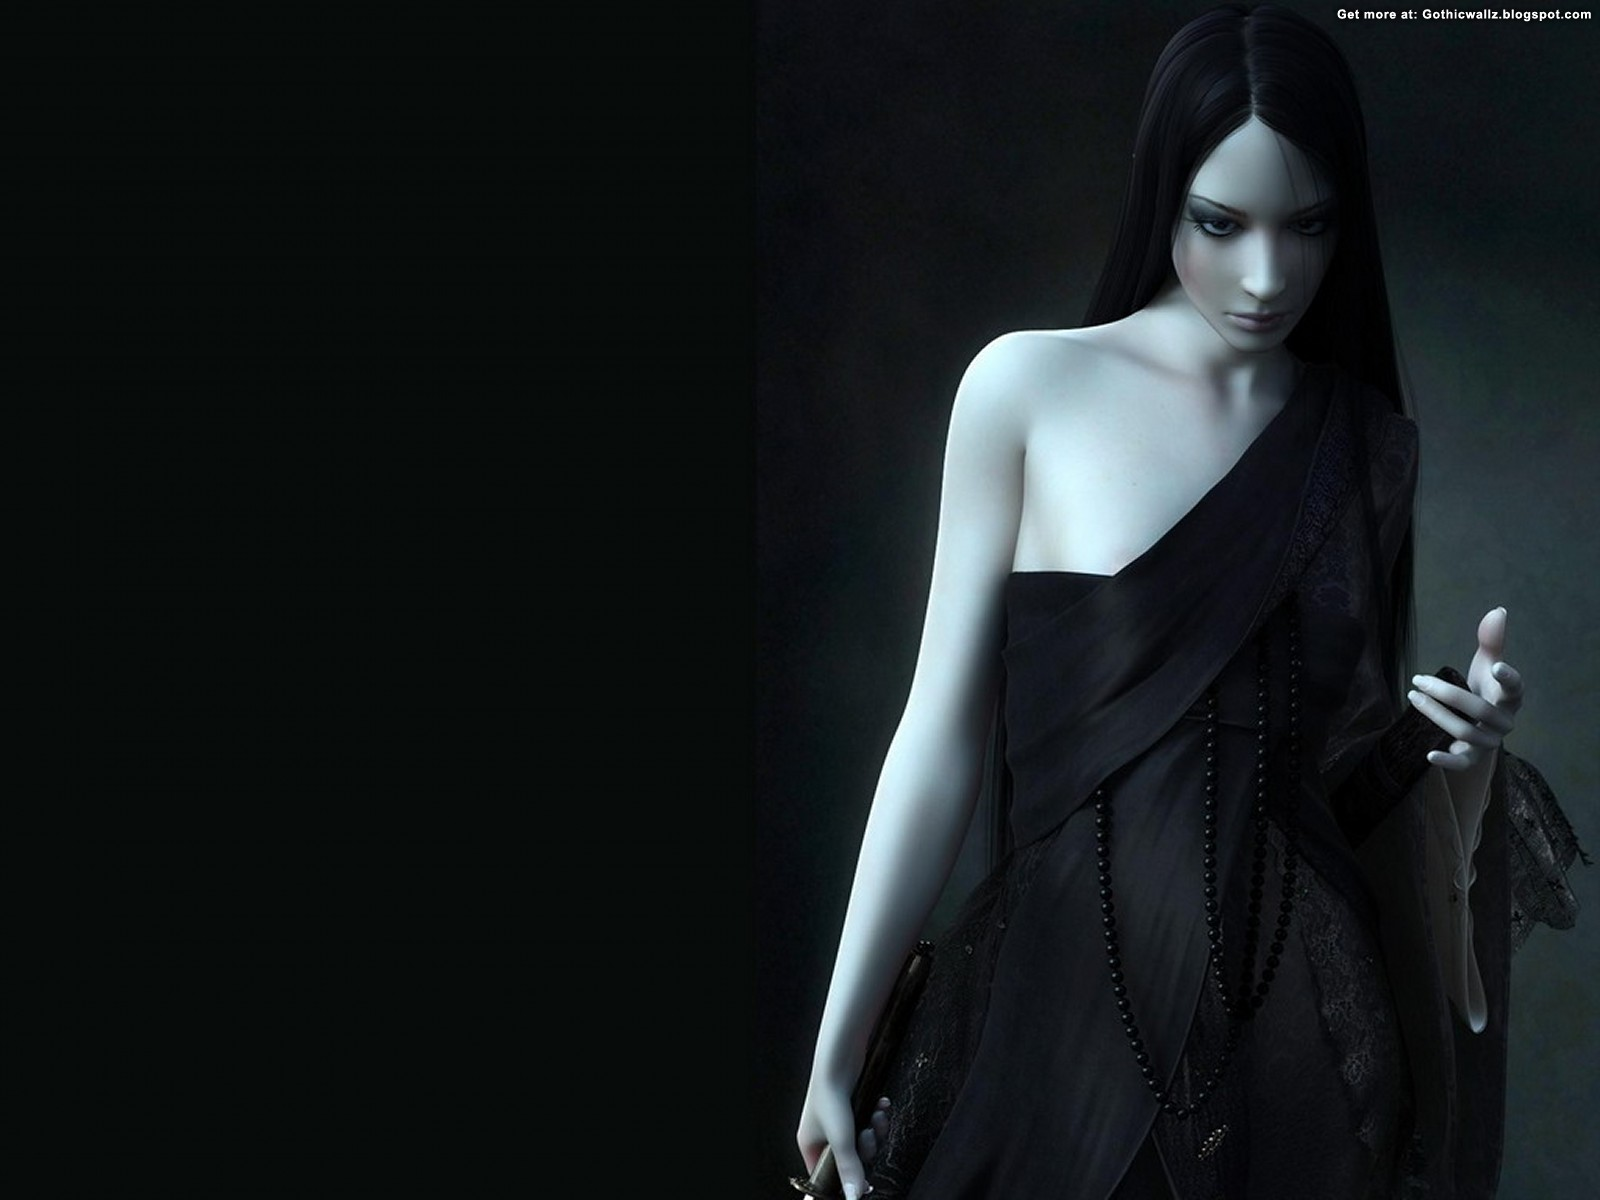 Dark Sculpture | Gothic Wallpaper Download